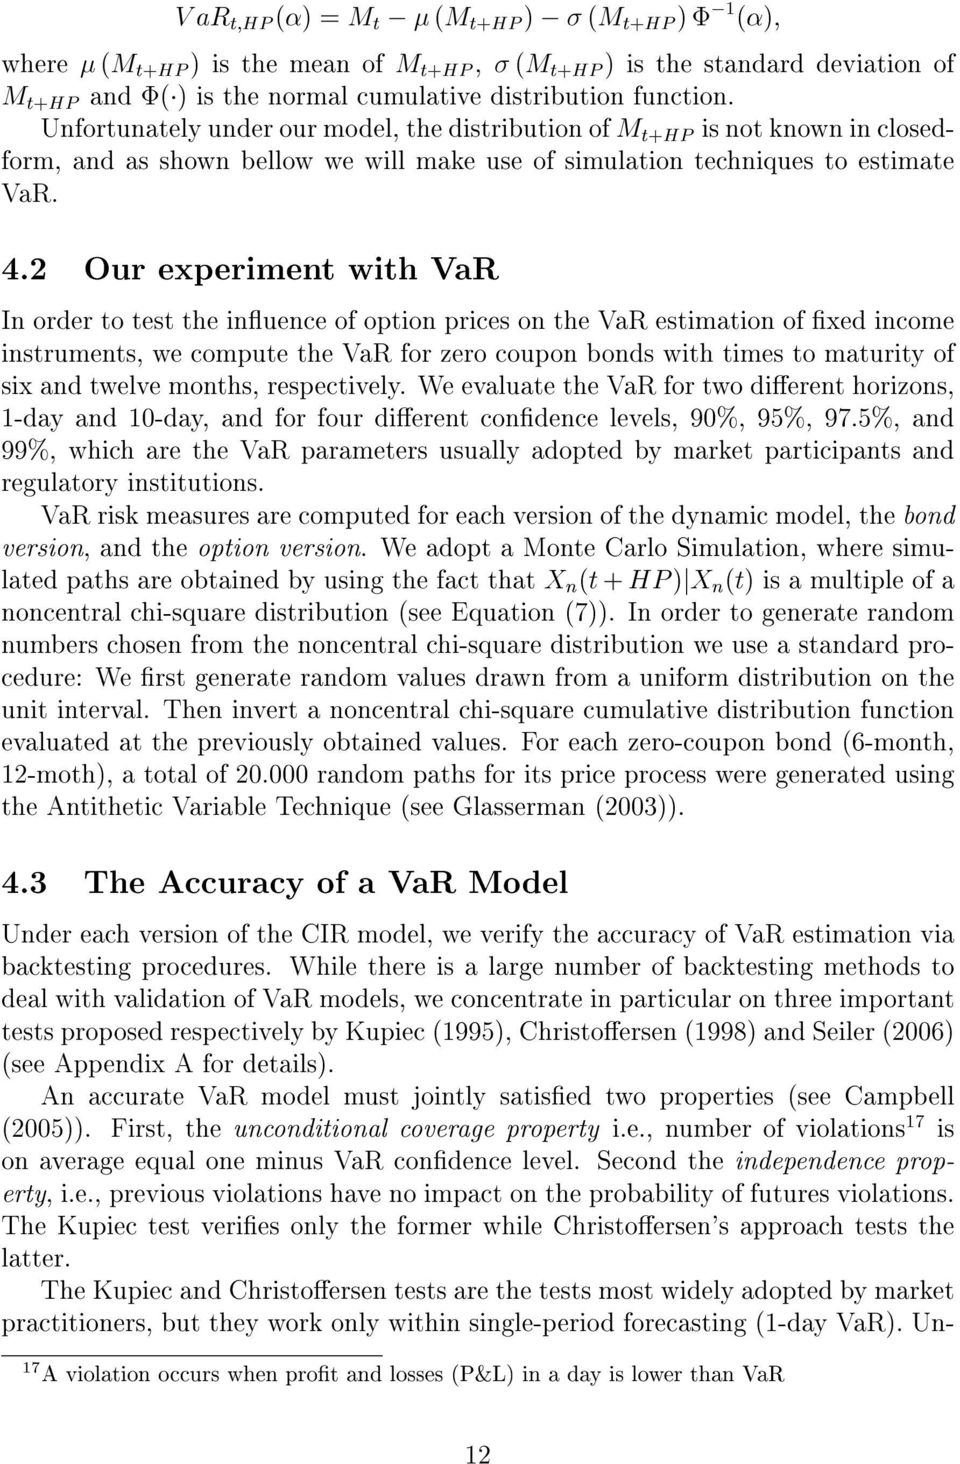 2 Our experiment with VaR In order to test the inuence of option prices on the VaR estimation of xed income instruments, we compute the VaR for zero coupon bonds with times to maturity of six and